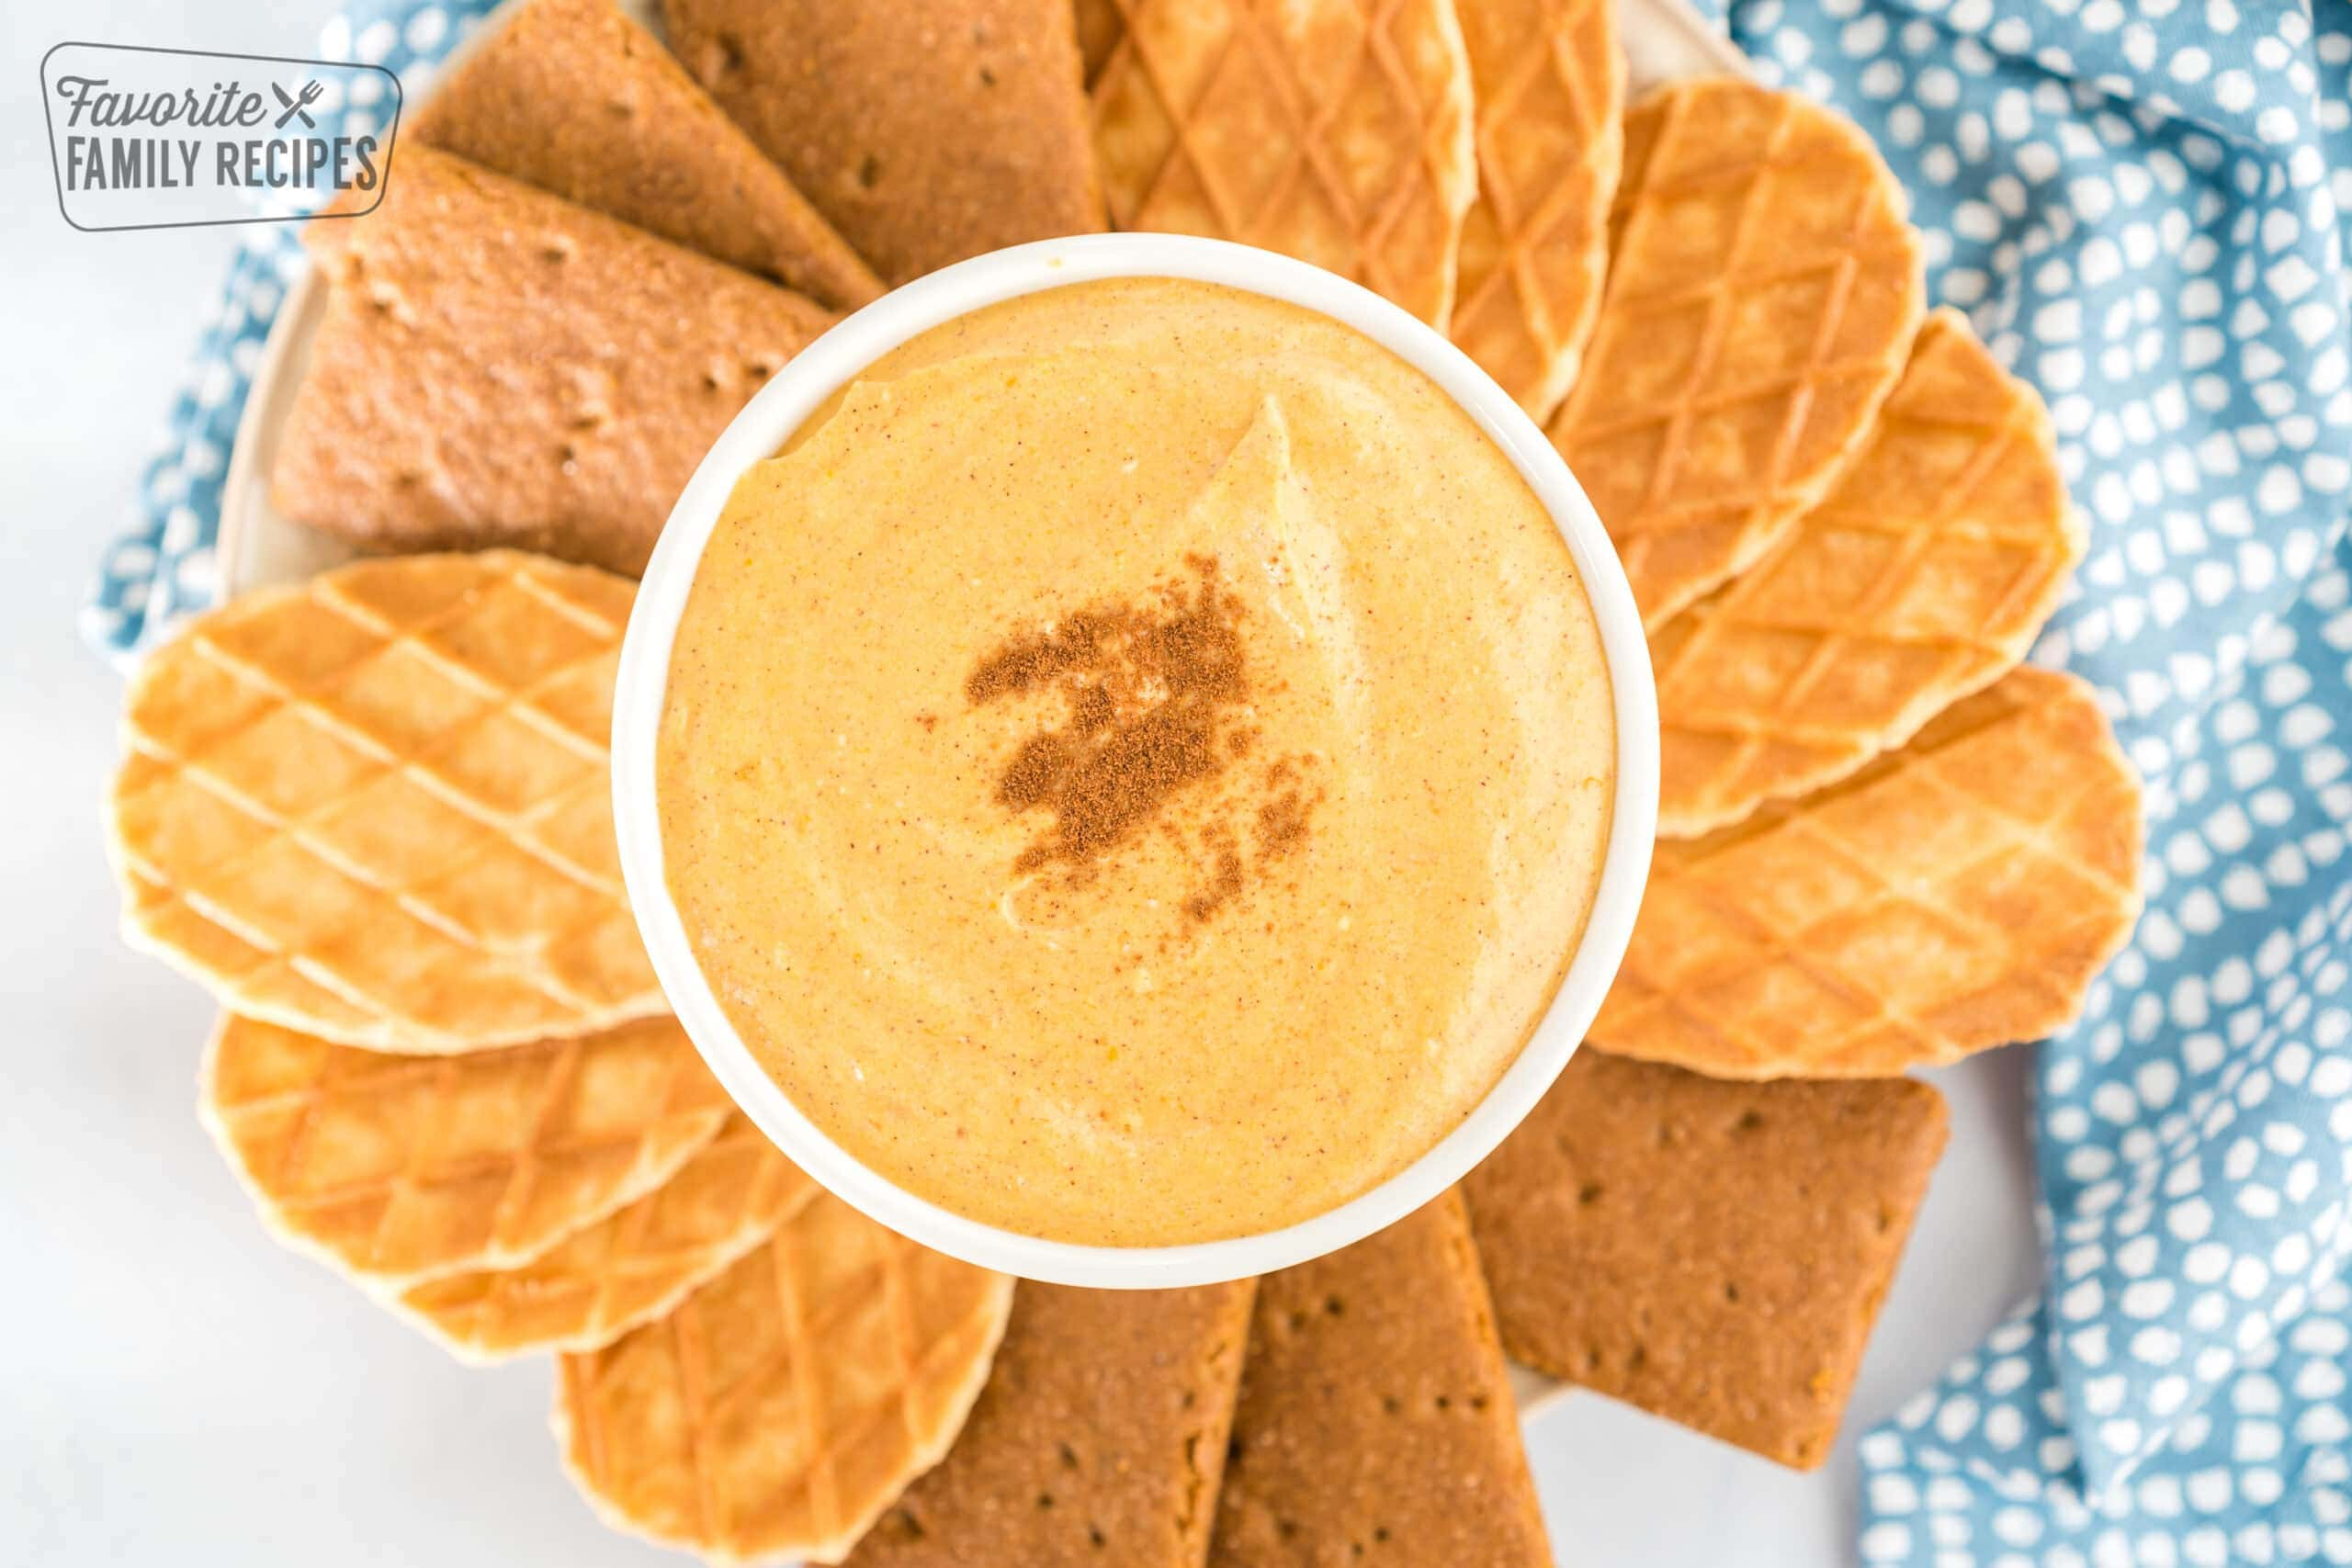 Pumpkin dip in a bowl sprinkled with cinnamon